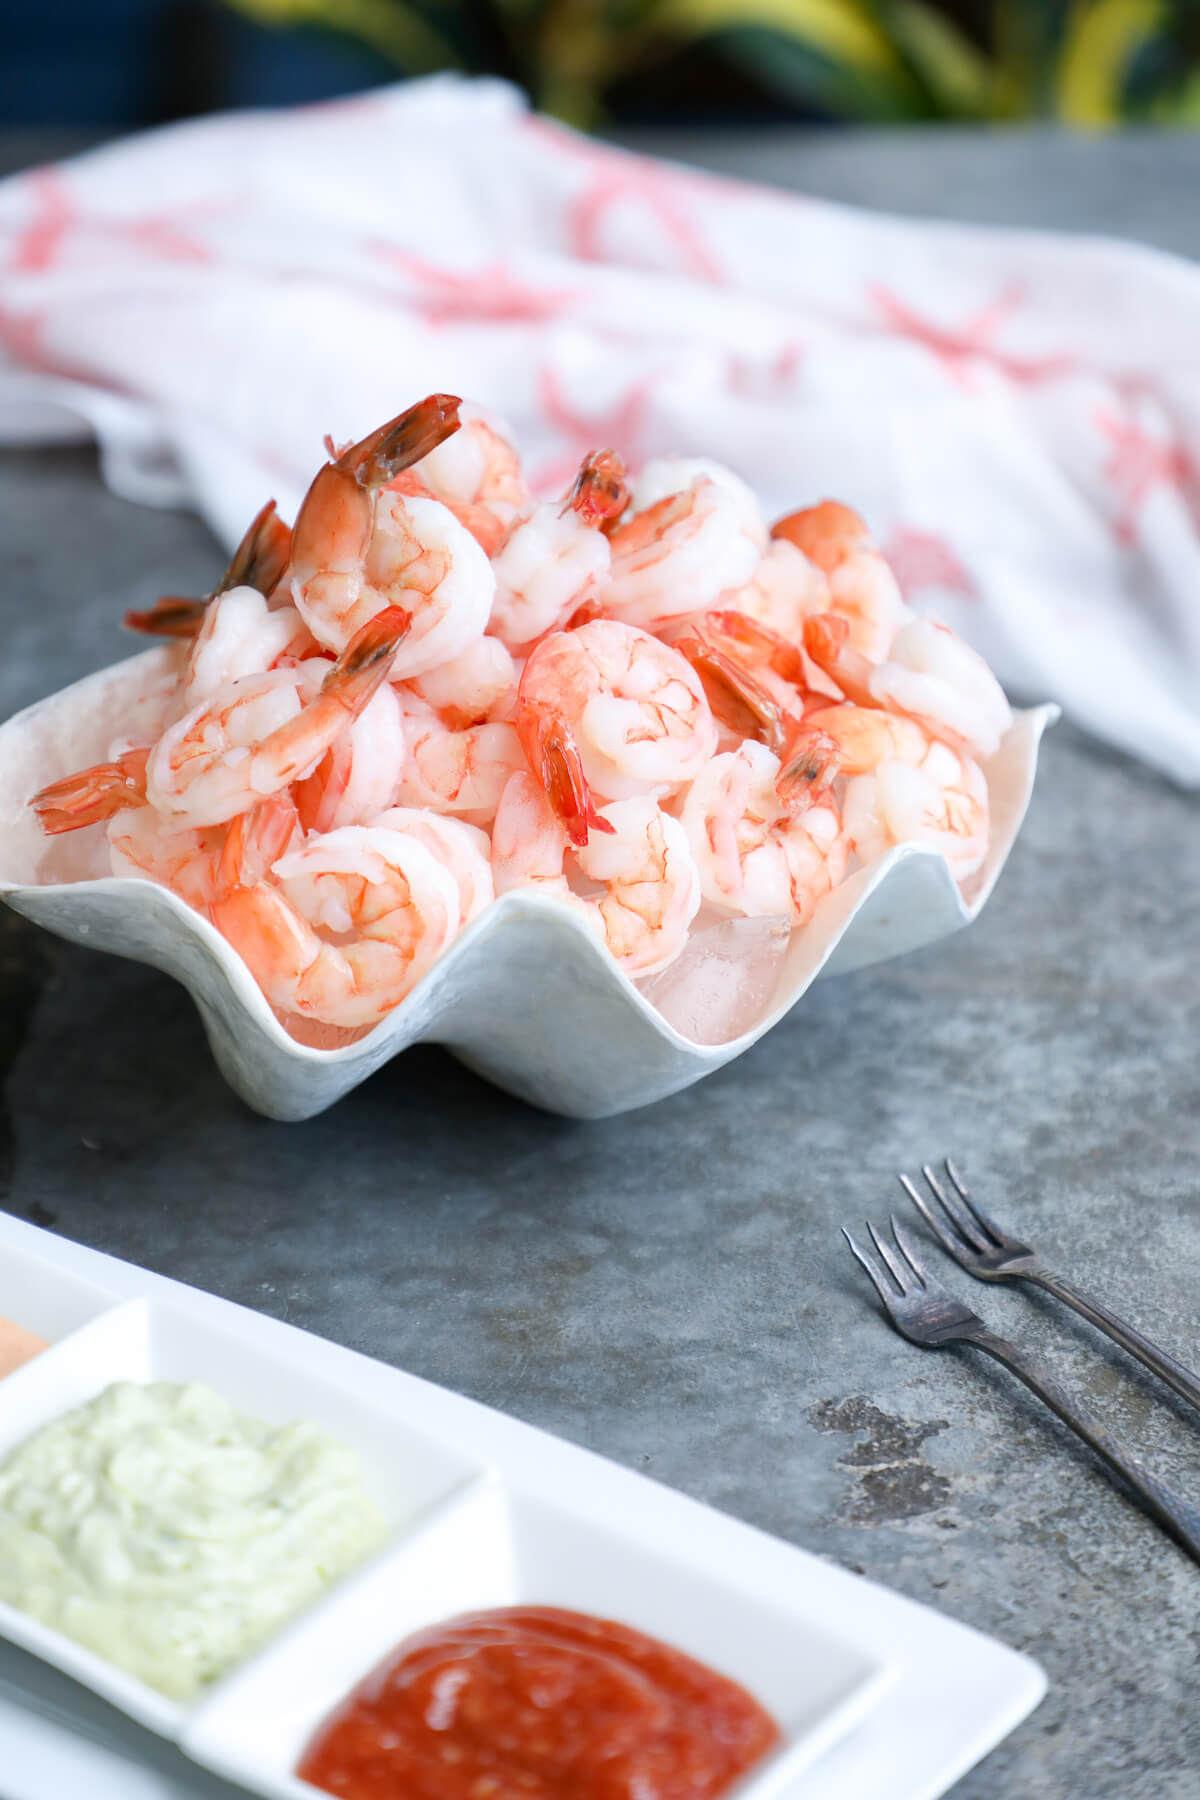 This Keto Shrimp Cocktail with 3 Sauces takes the classic shrimp cocktail appetizer of the 90's to the next level!  Sweet, succulent shrimp with your choice of any or all of these 3 keto friendly dipping sauces that can be made in advance in just minutes!